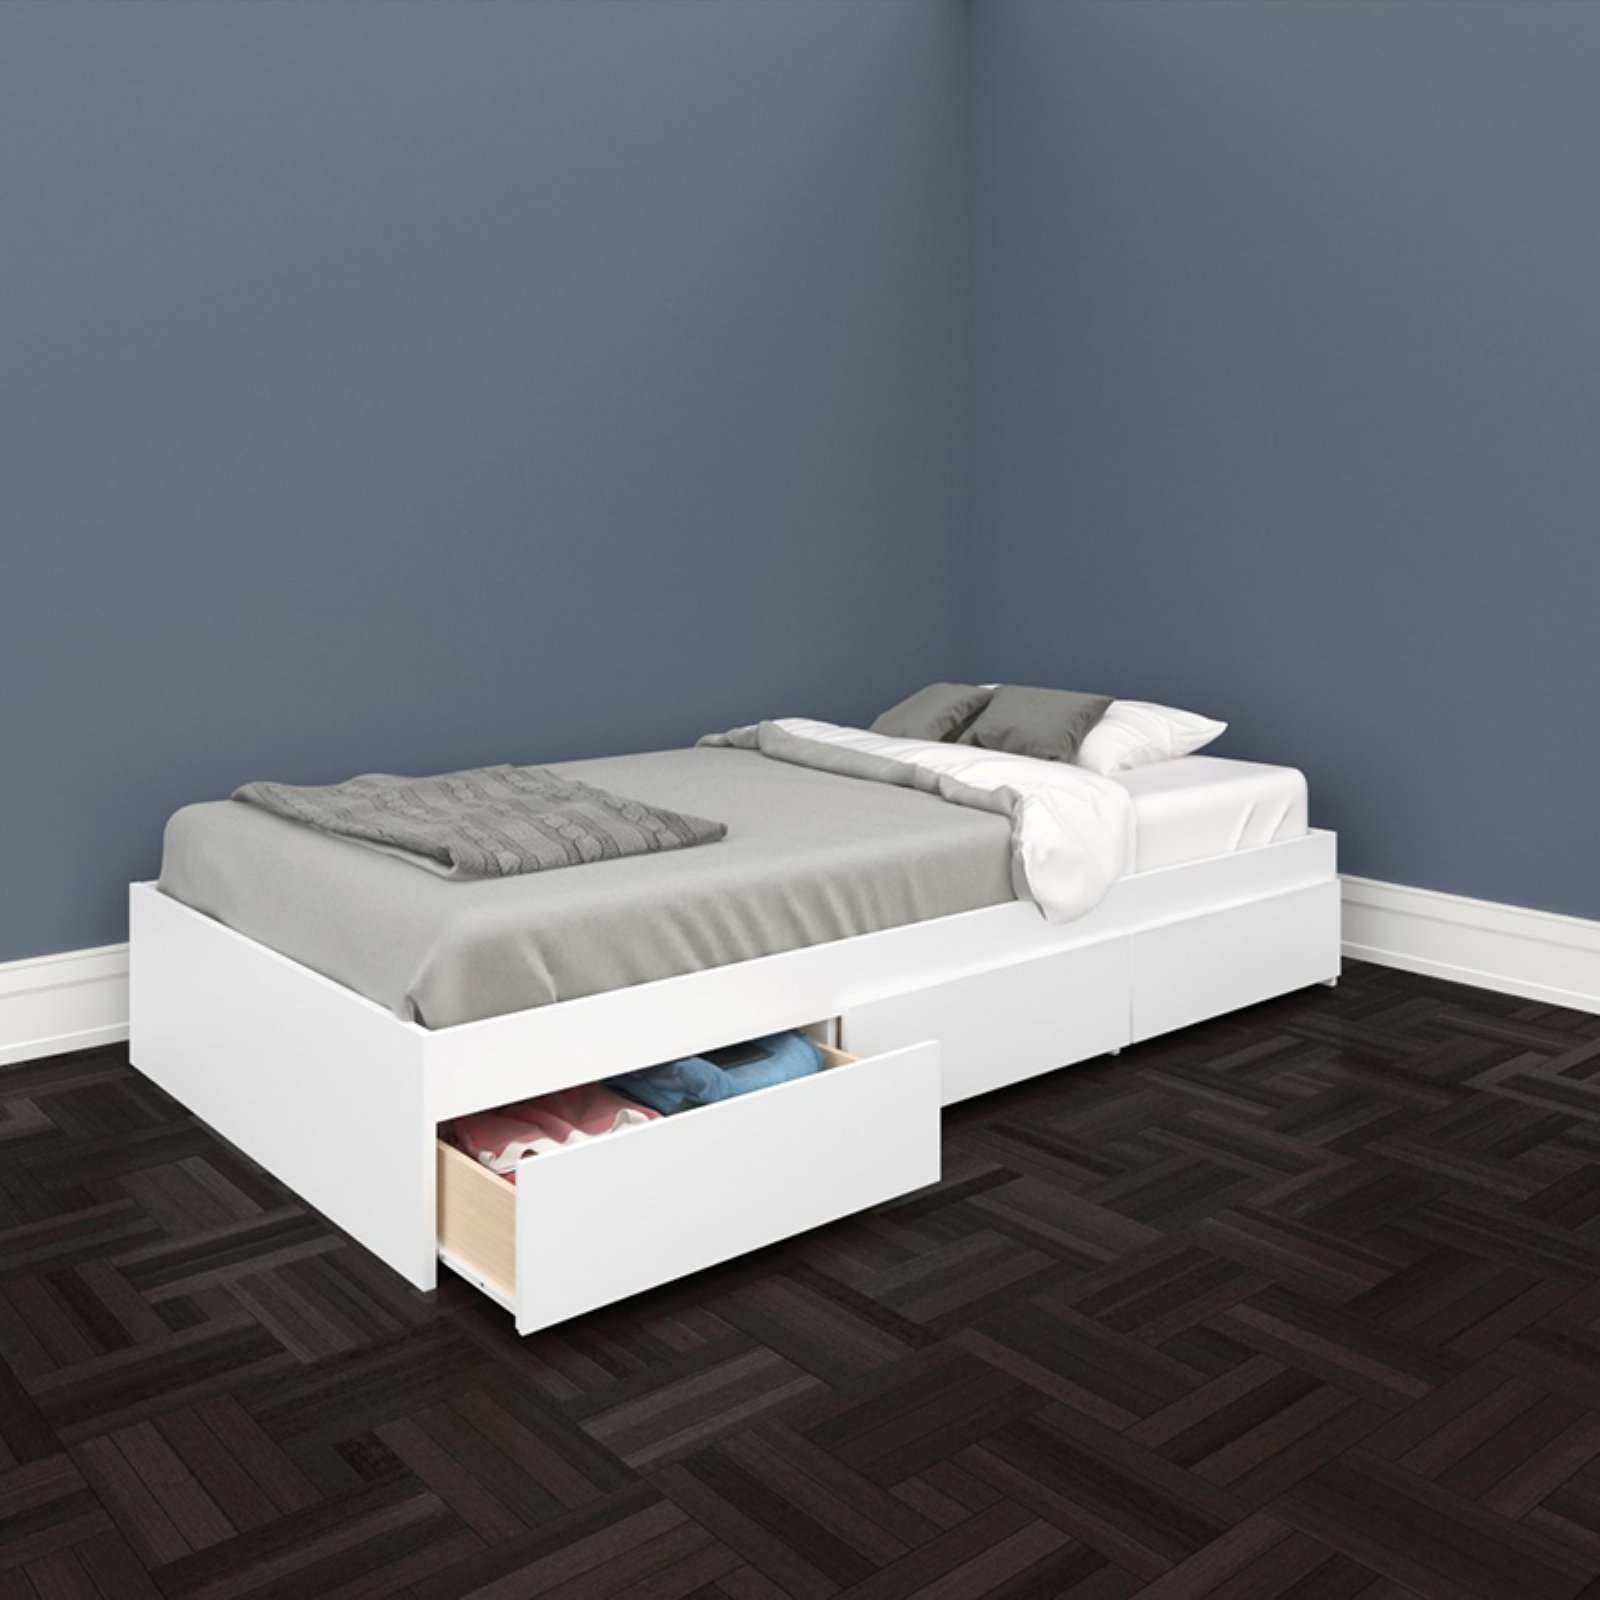 Nexera Blvd 3 Drawer Storage Bed in White-Full